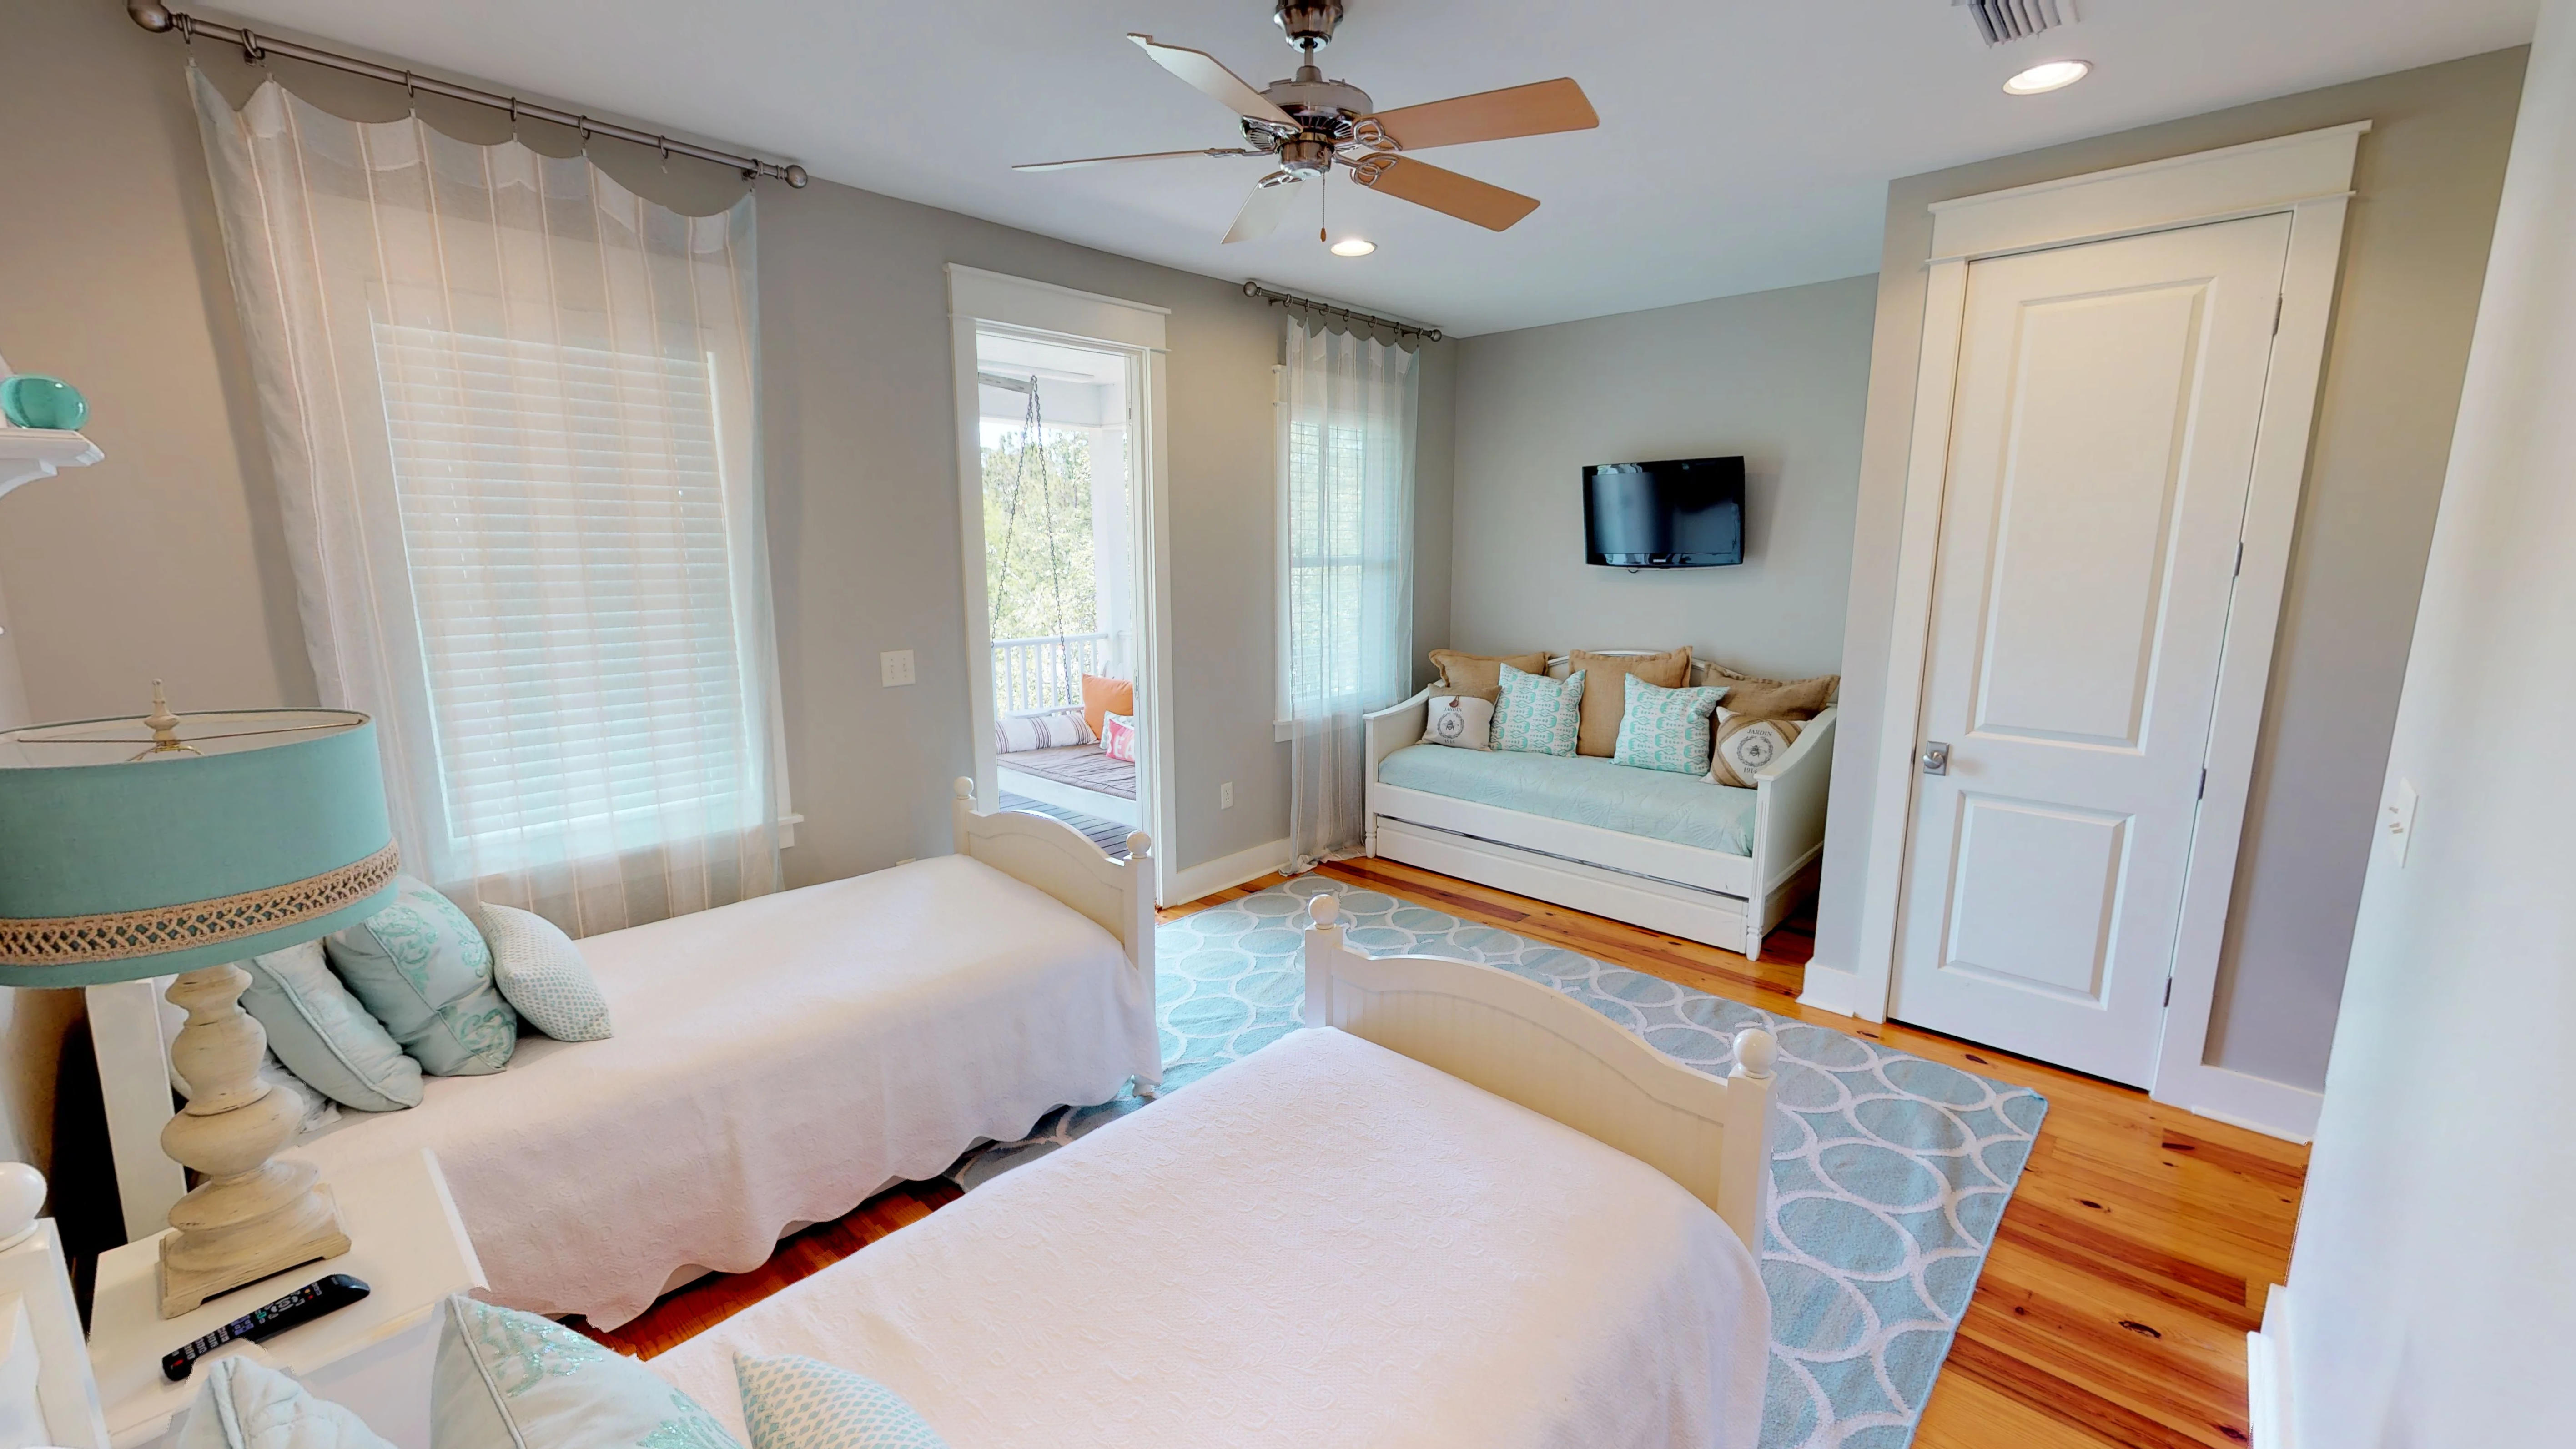 Sleeping for five to six in this guest bedroom with direct access to the porch